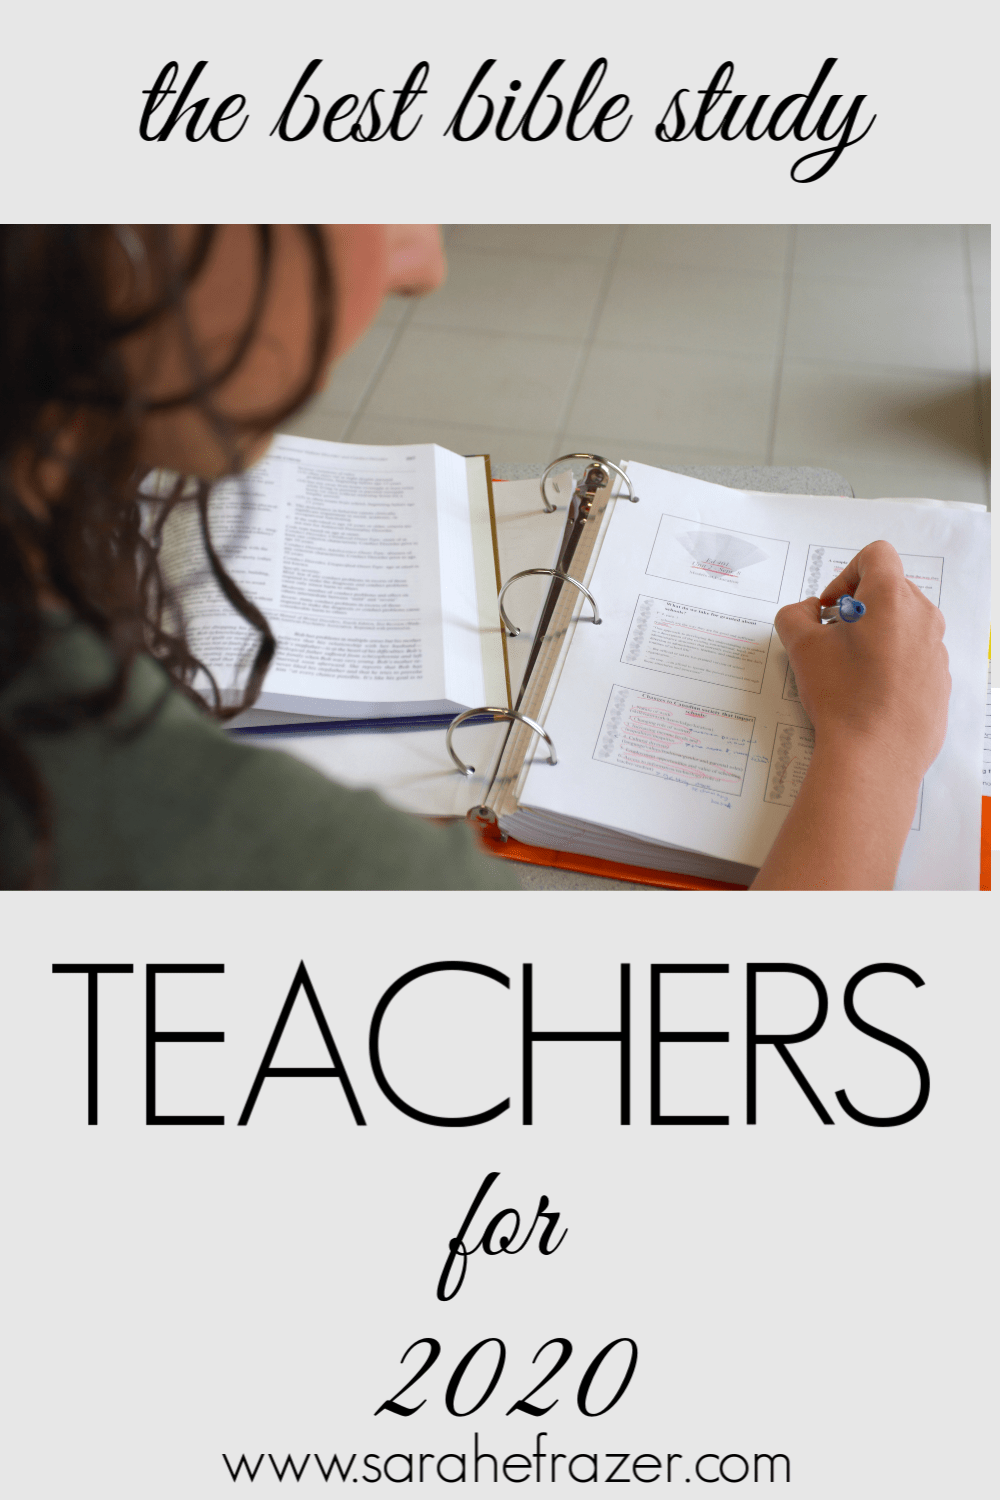 Seven of the Best Women Bible Study Teachers